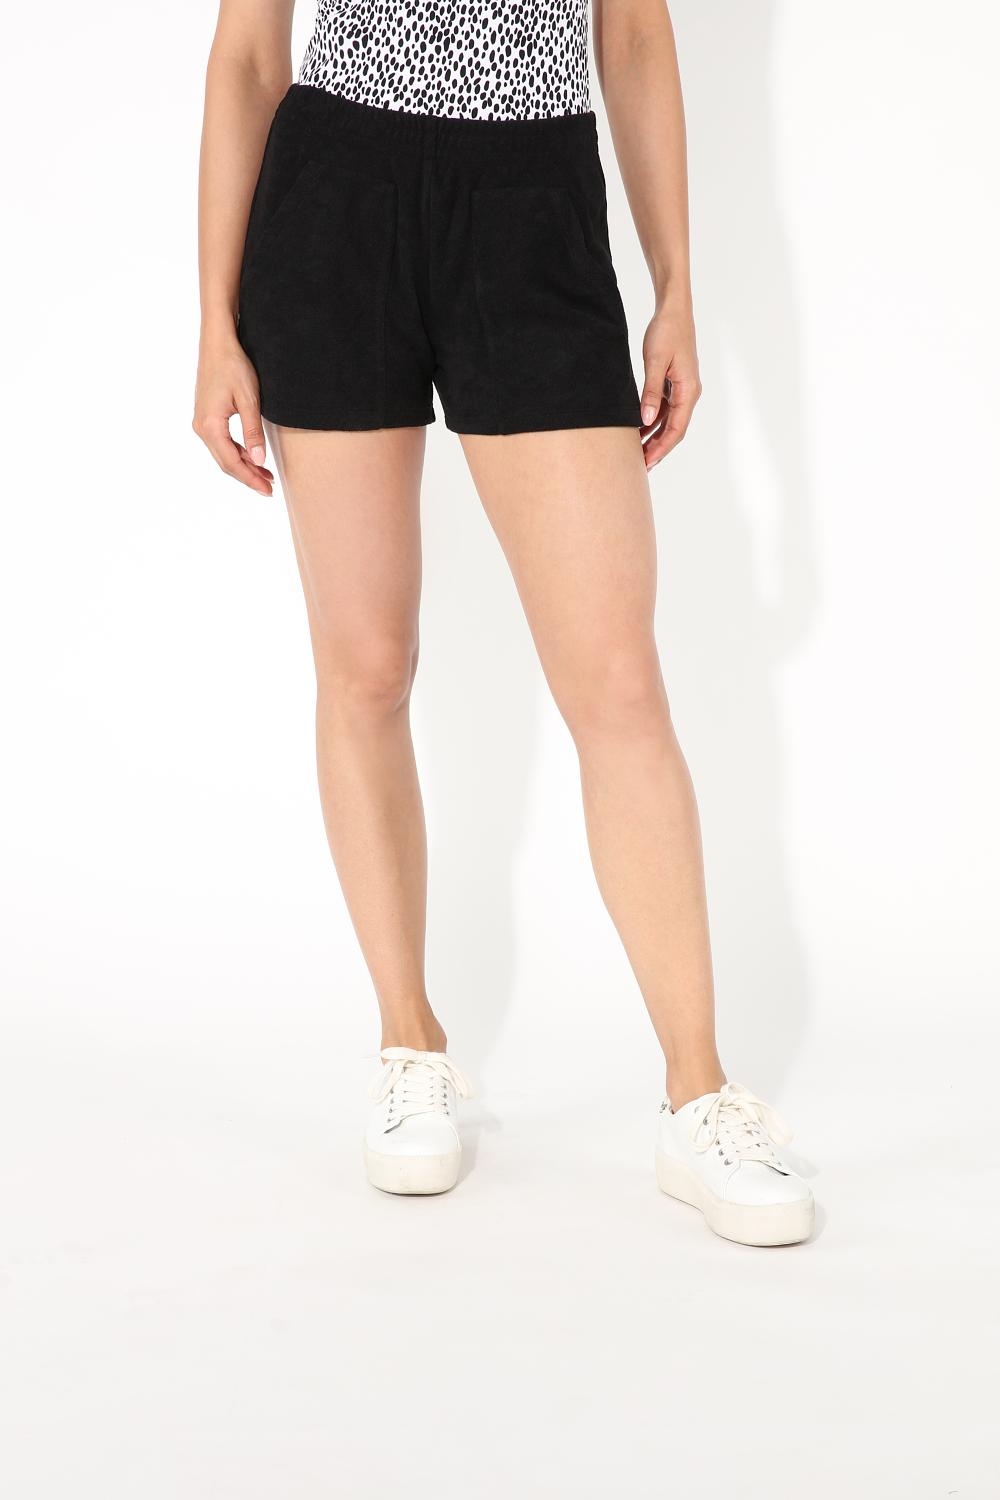 Water Absorbing Shorts